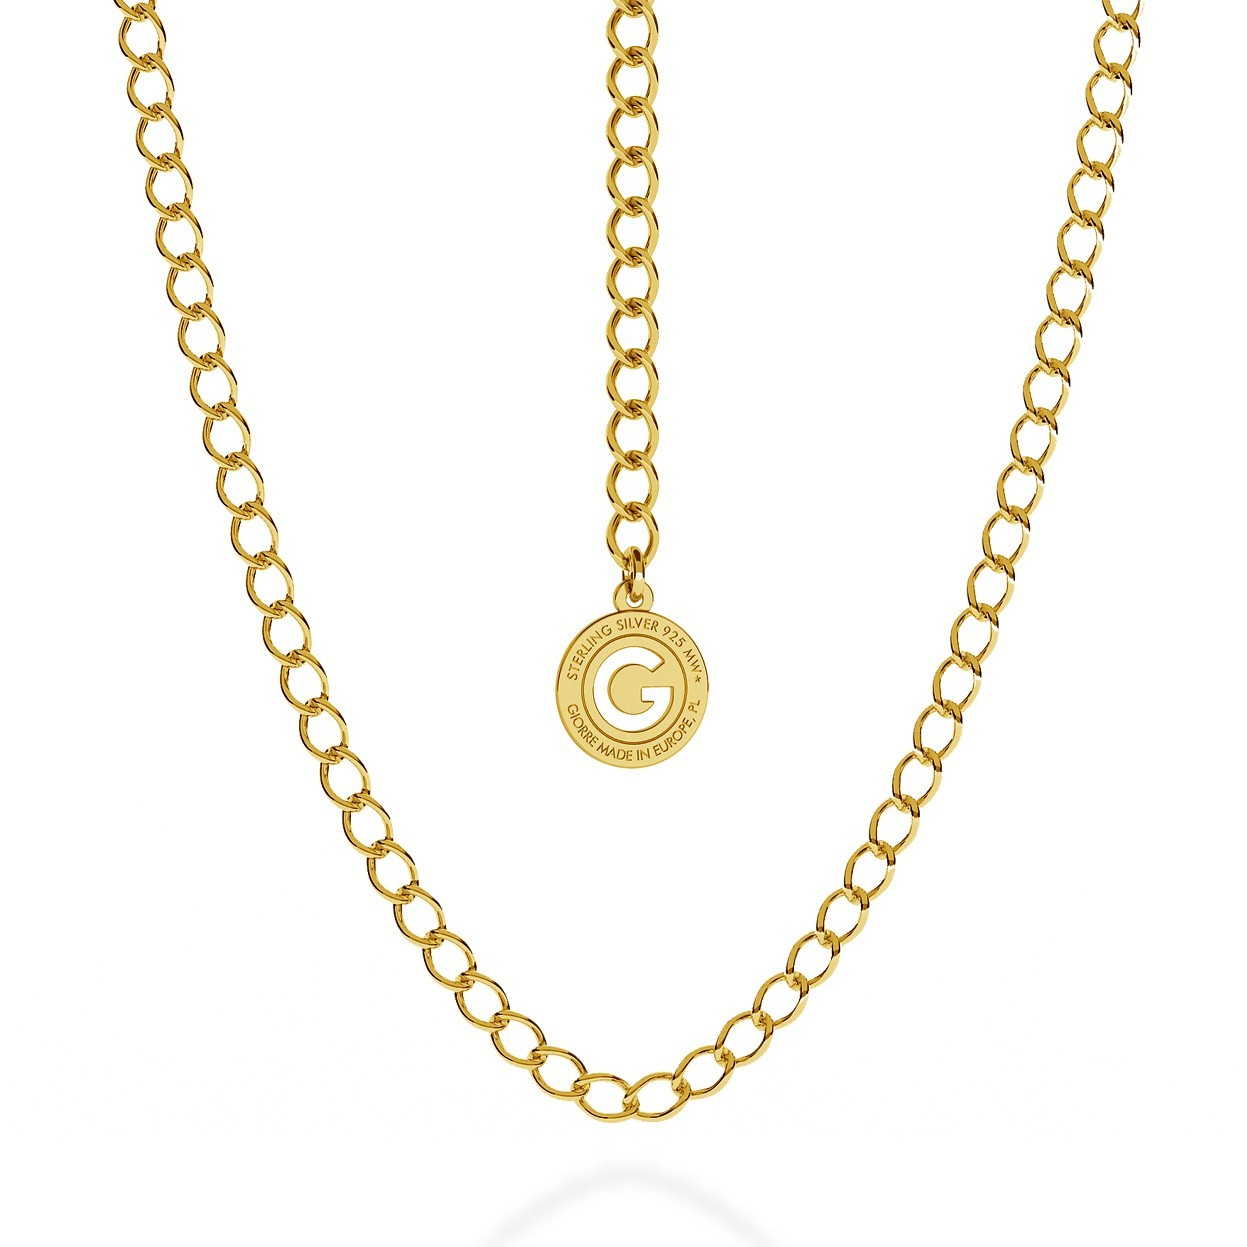 SILVER NECKLACE ROMBO 55 CM, GOLD PLATED (YELLOW GOLD)